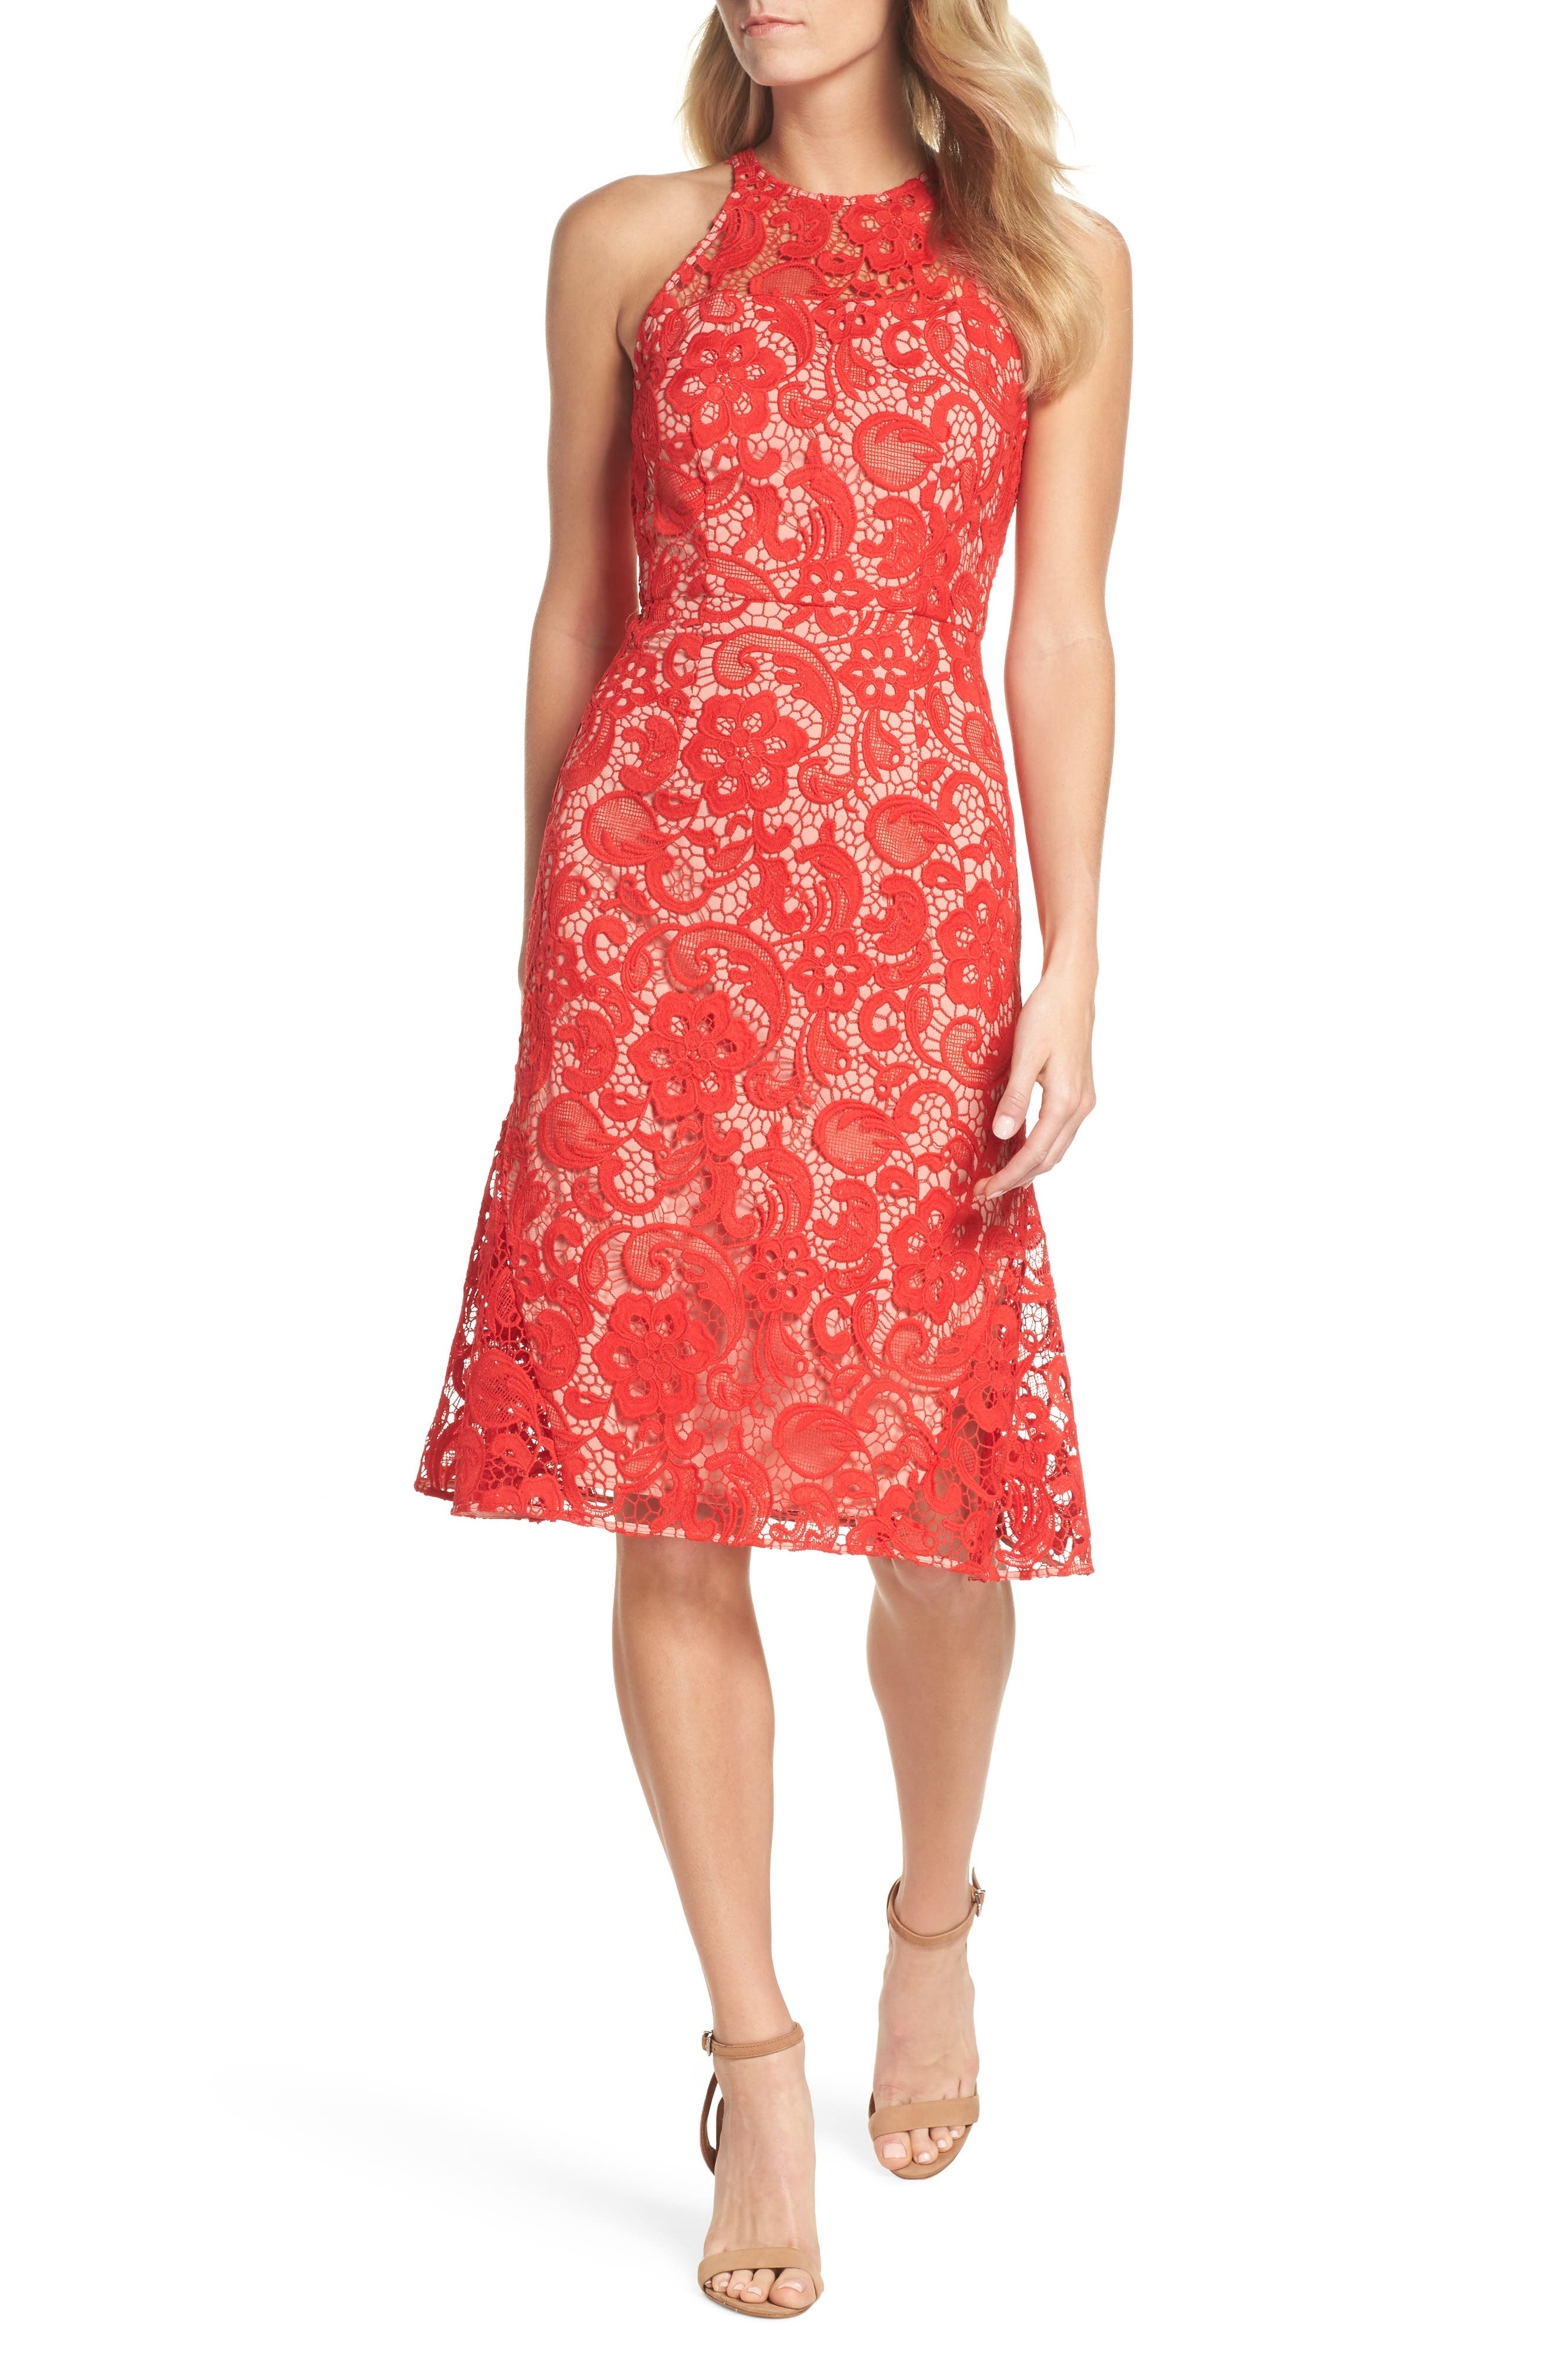 Chelsea28 Carnation Lace Dress